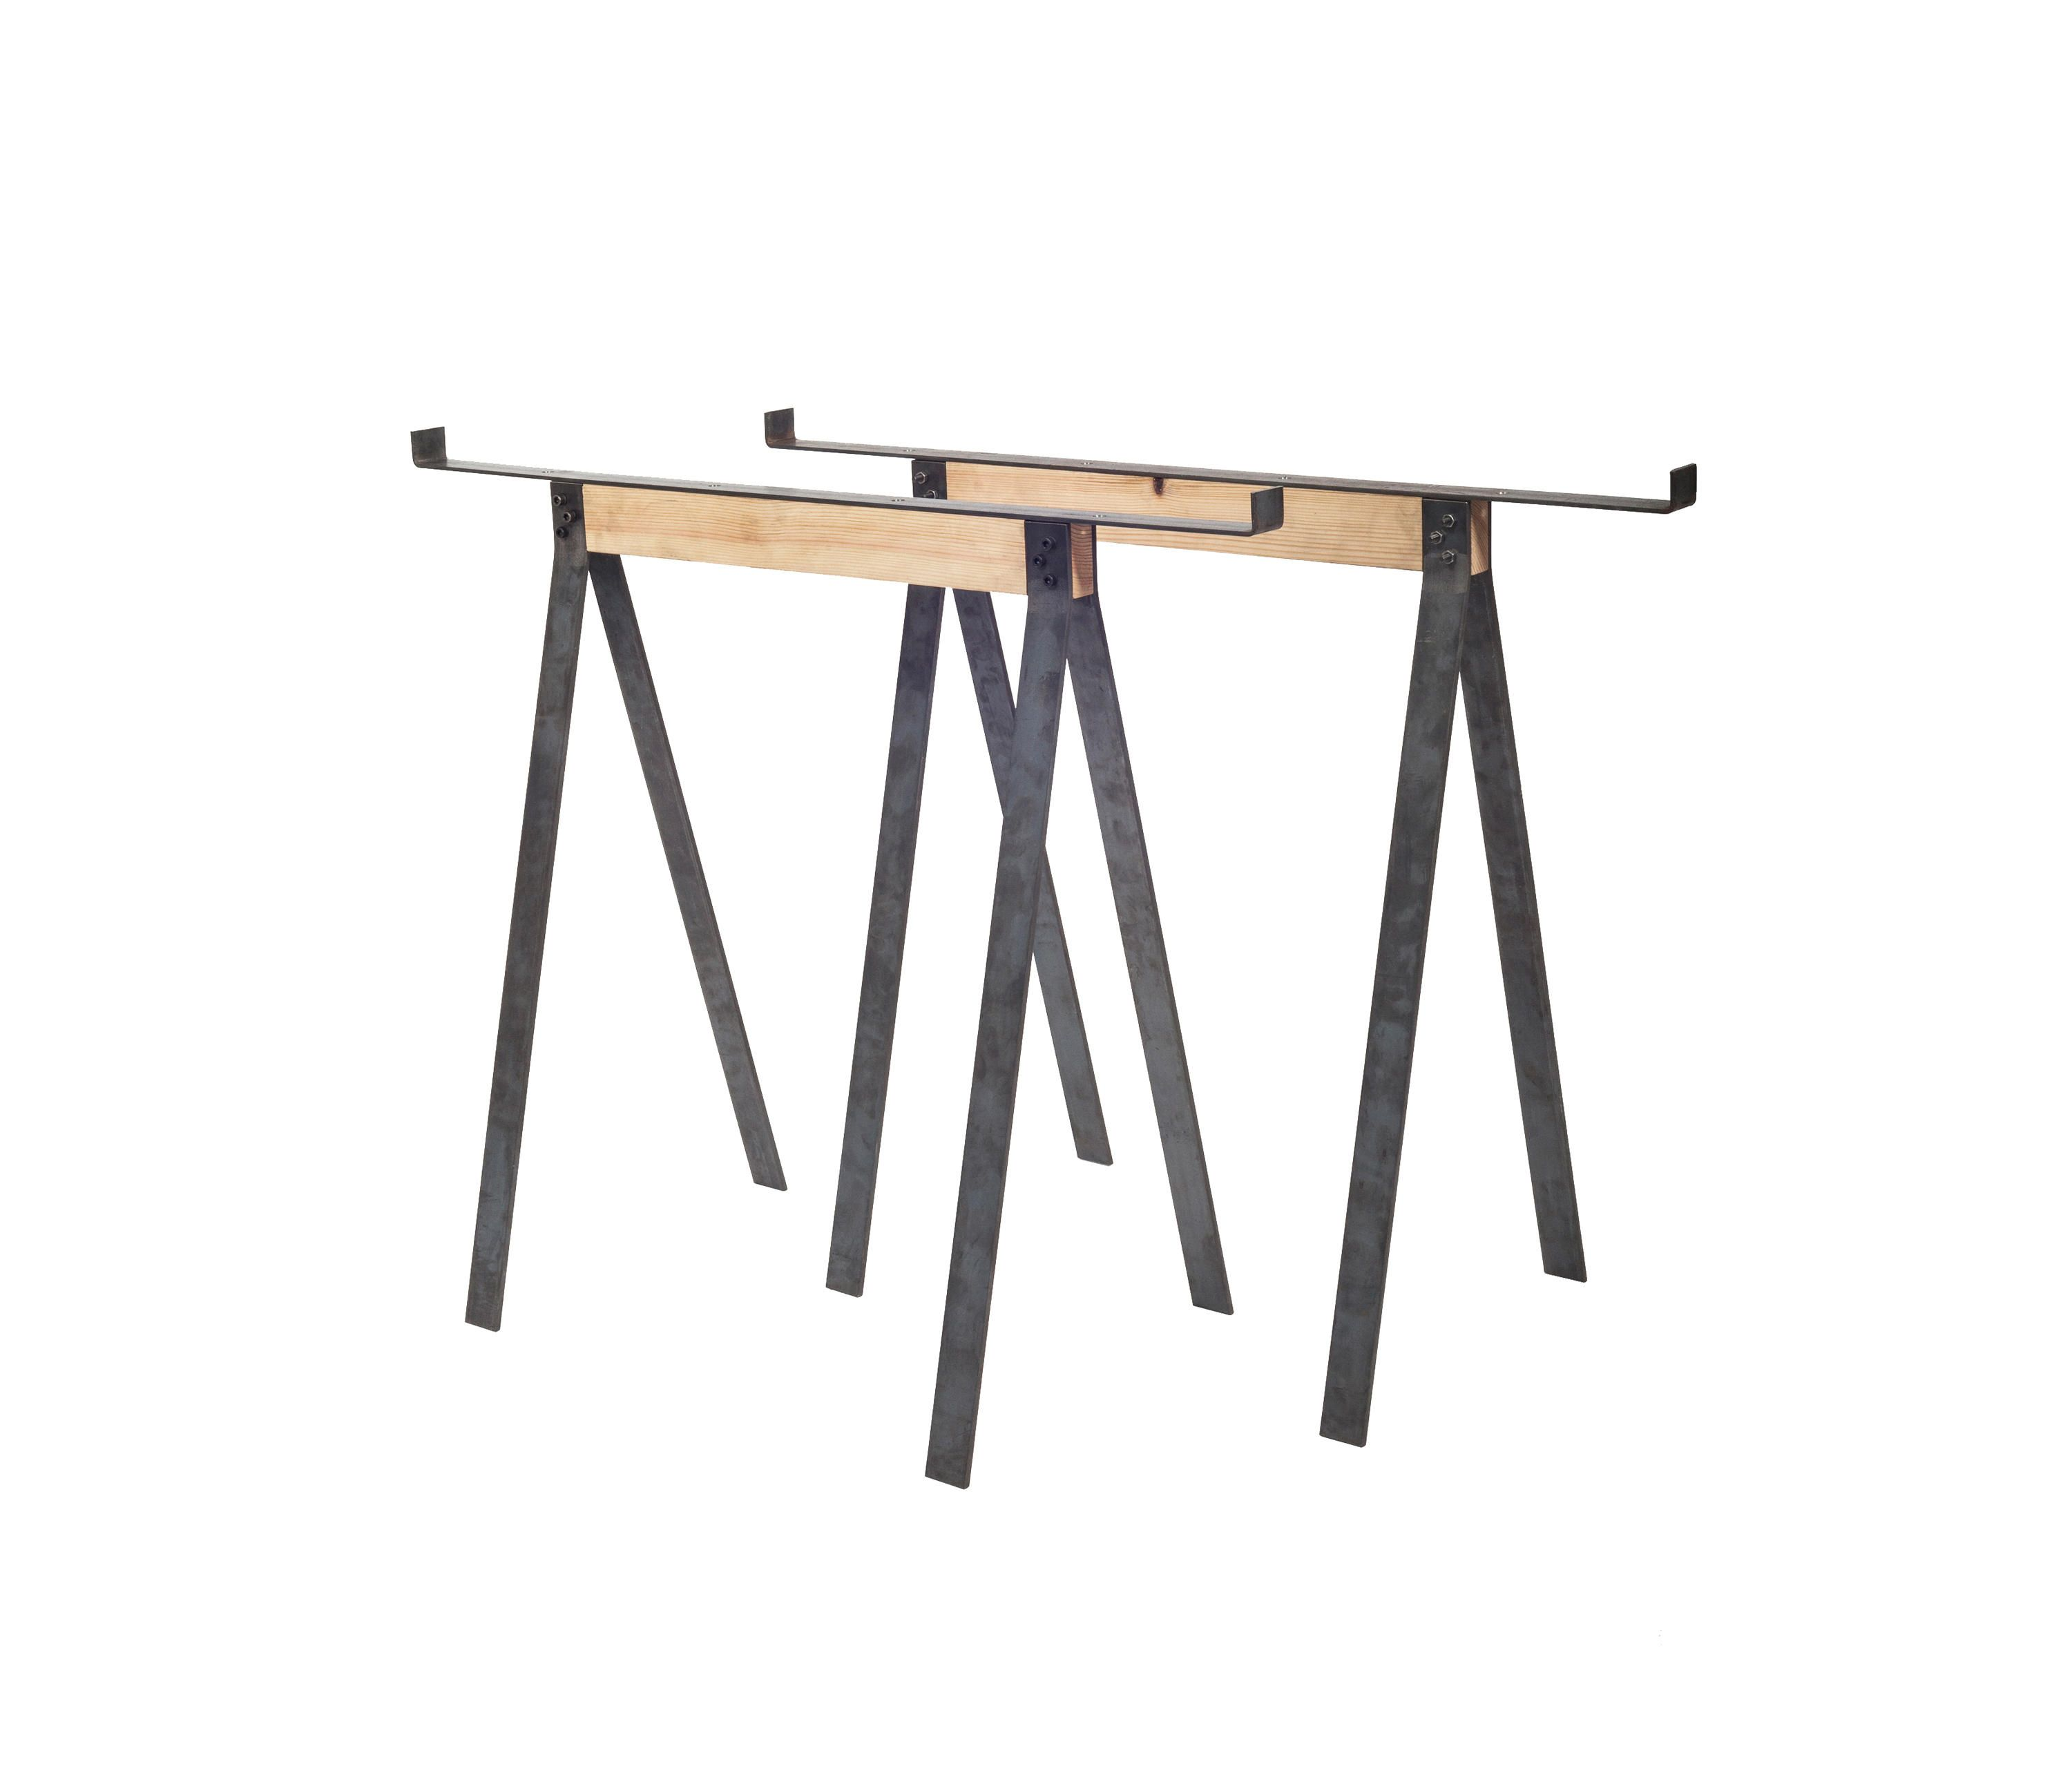 The Trestles From Frama In Two Lengths   56cm And 86cm   Are Fitting Both A